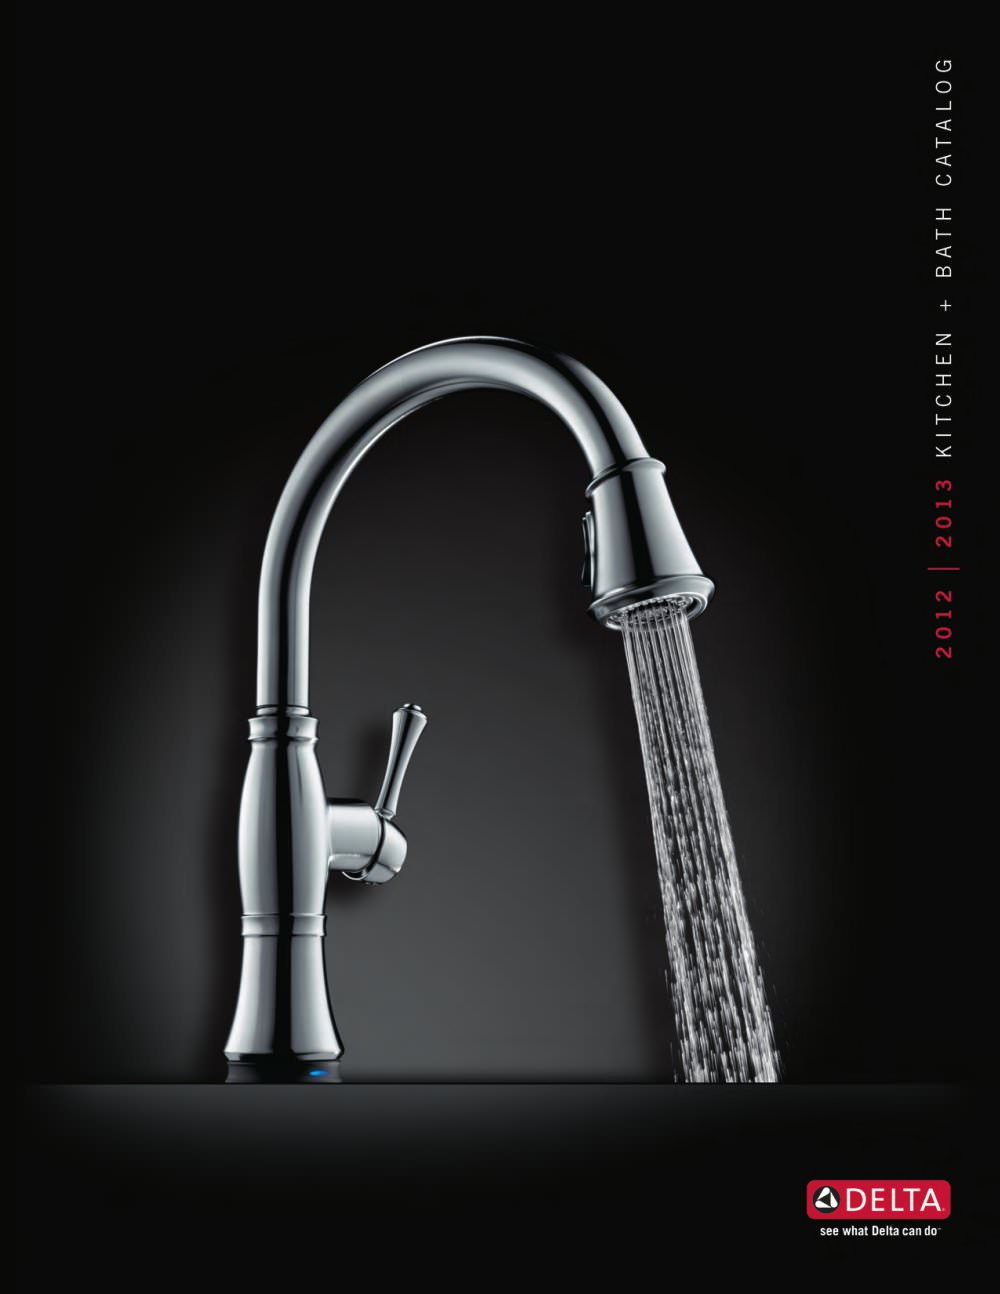 2012-2013 Delta Kitchen & Bath Catalog (DL-1756) - Delta - PDF ...